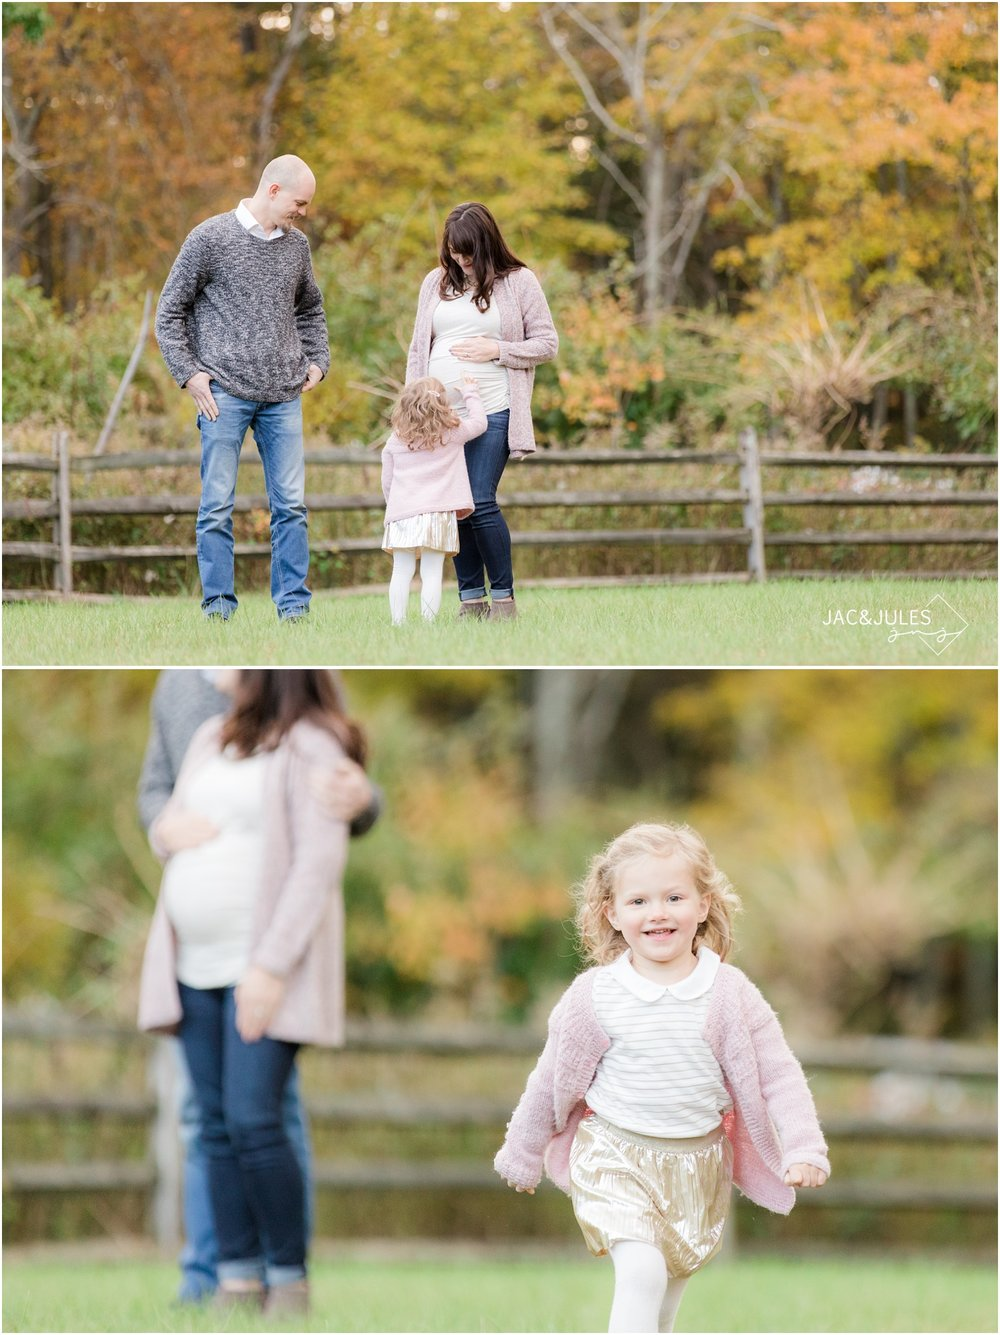 Photo of pregnant mom and girl running in Fall foliage at Allaire State Park.